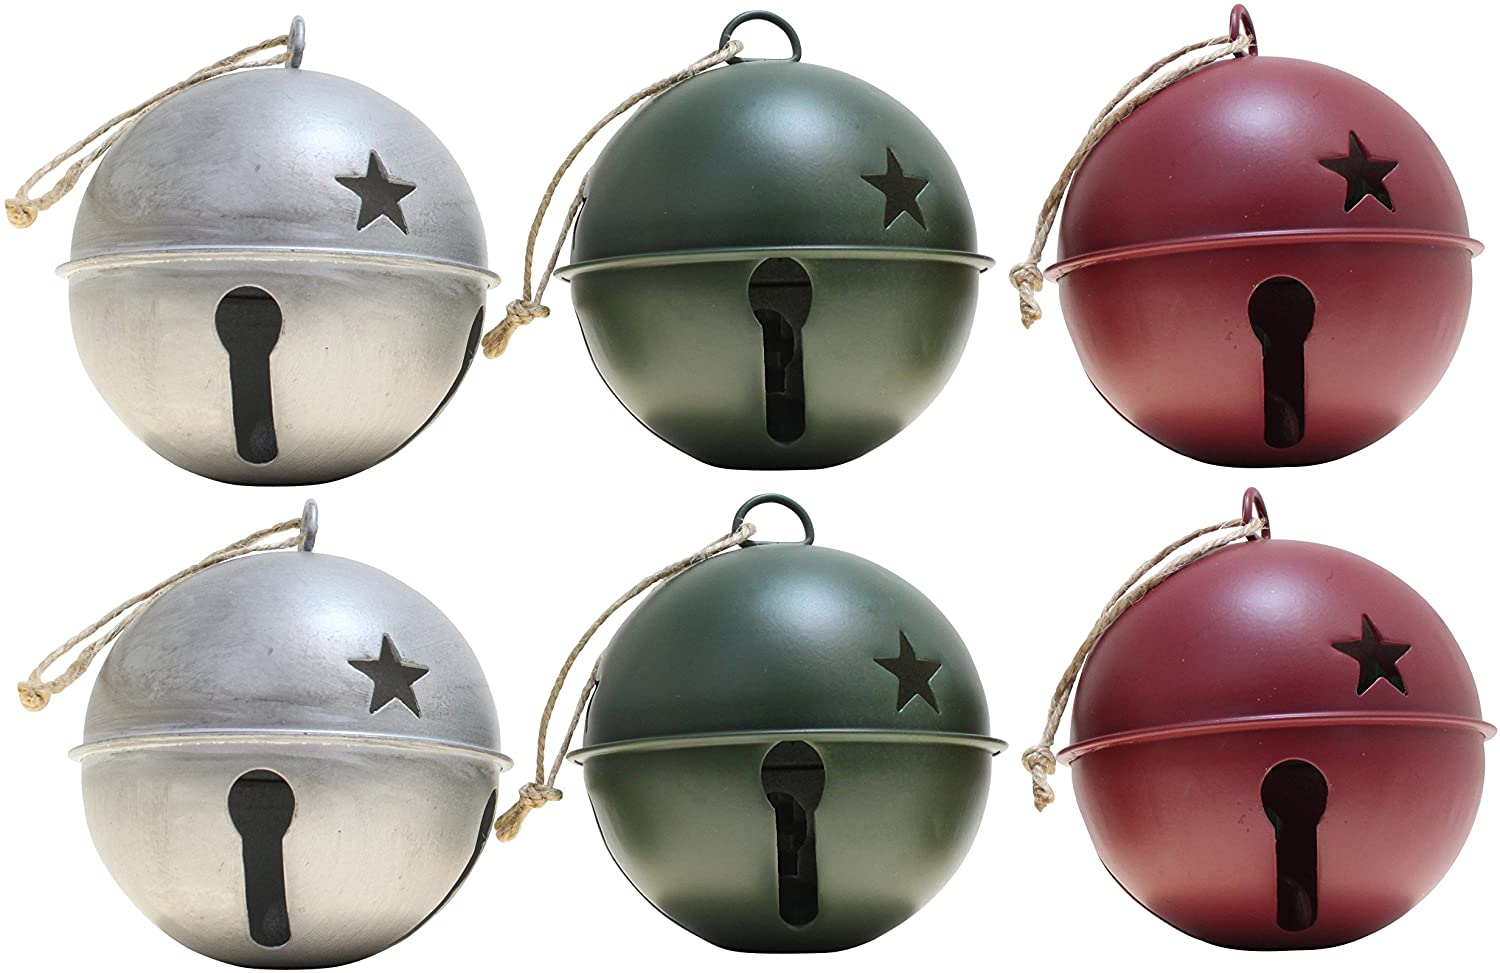 Haute Decor Jingle Bell Ornaments, 3.35-inch Diameter, 6-Pack (Assorted (Silver, Red & Green))